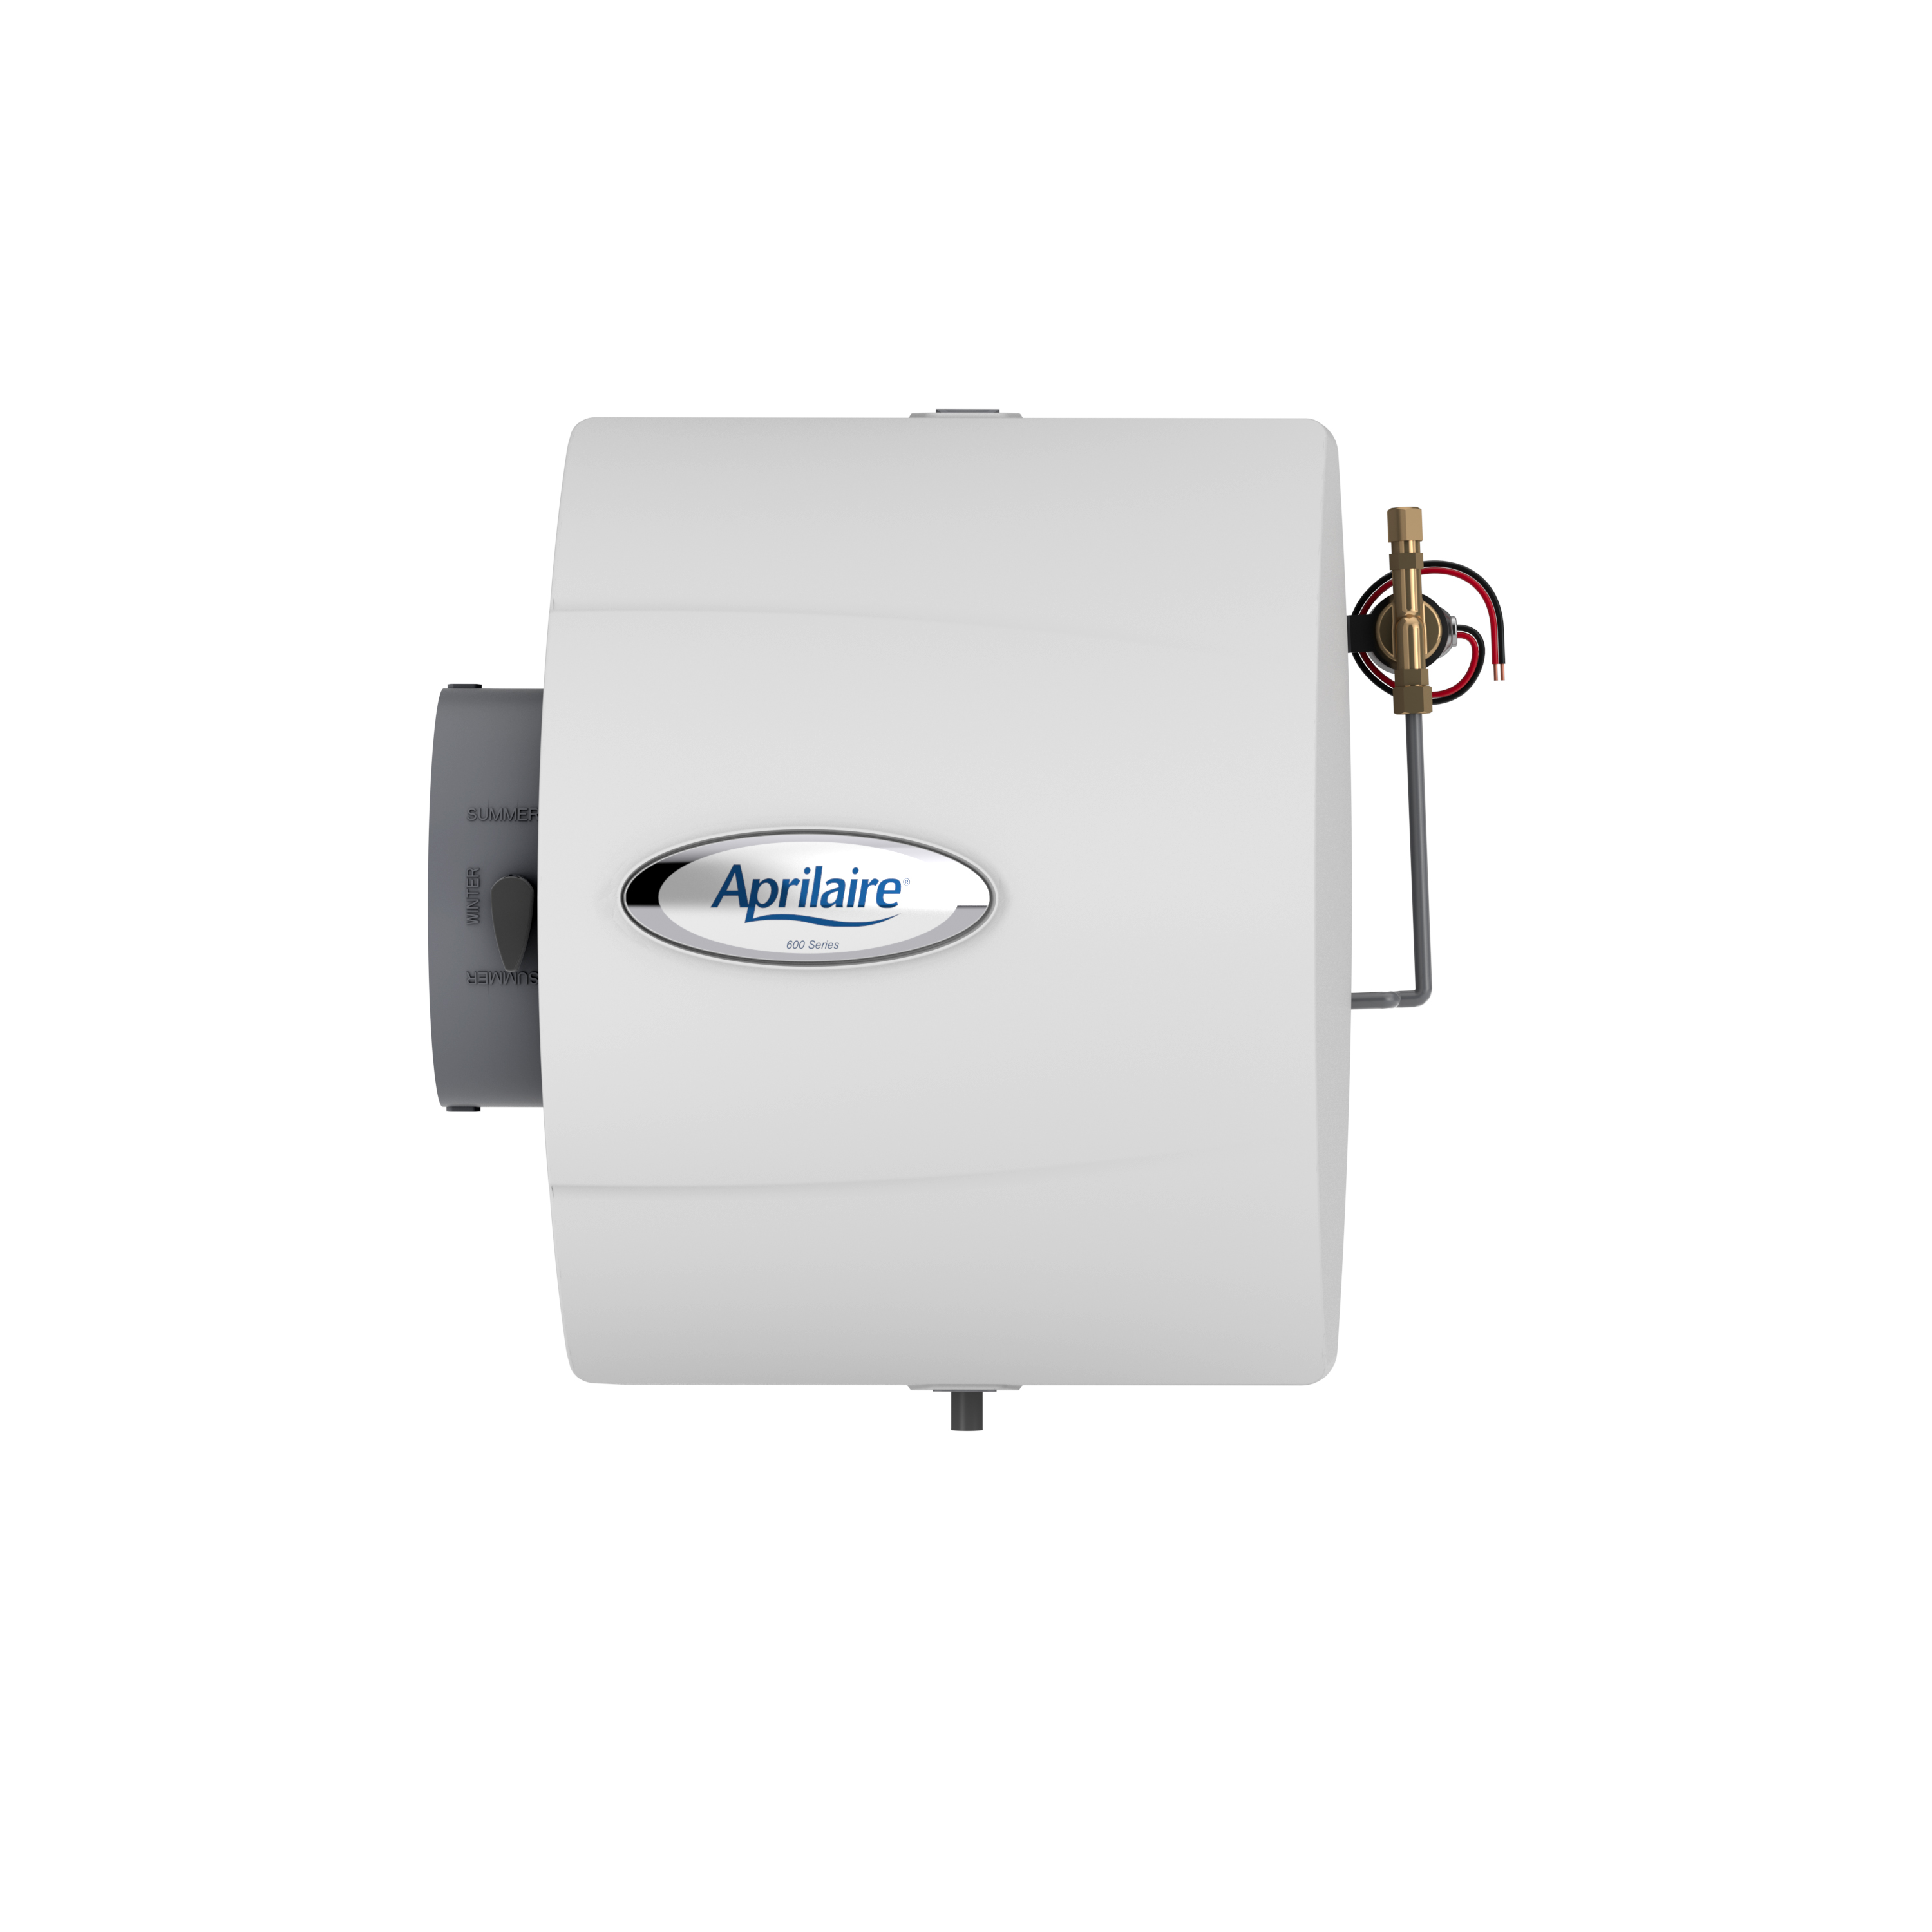 600M APRILAIRE BYPASS HUMIDIFIER WITH MANUAL CONTR